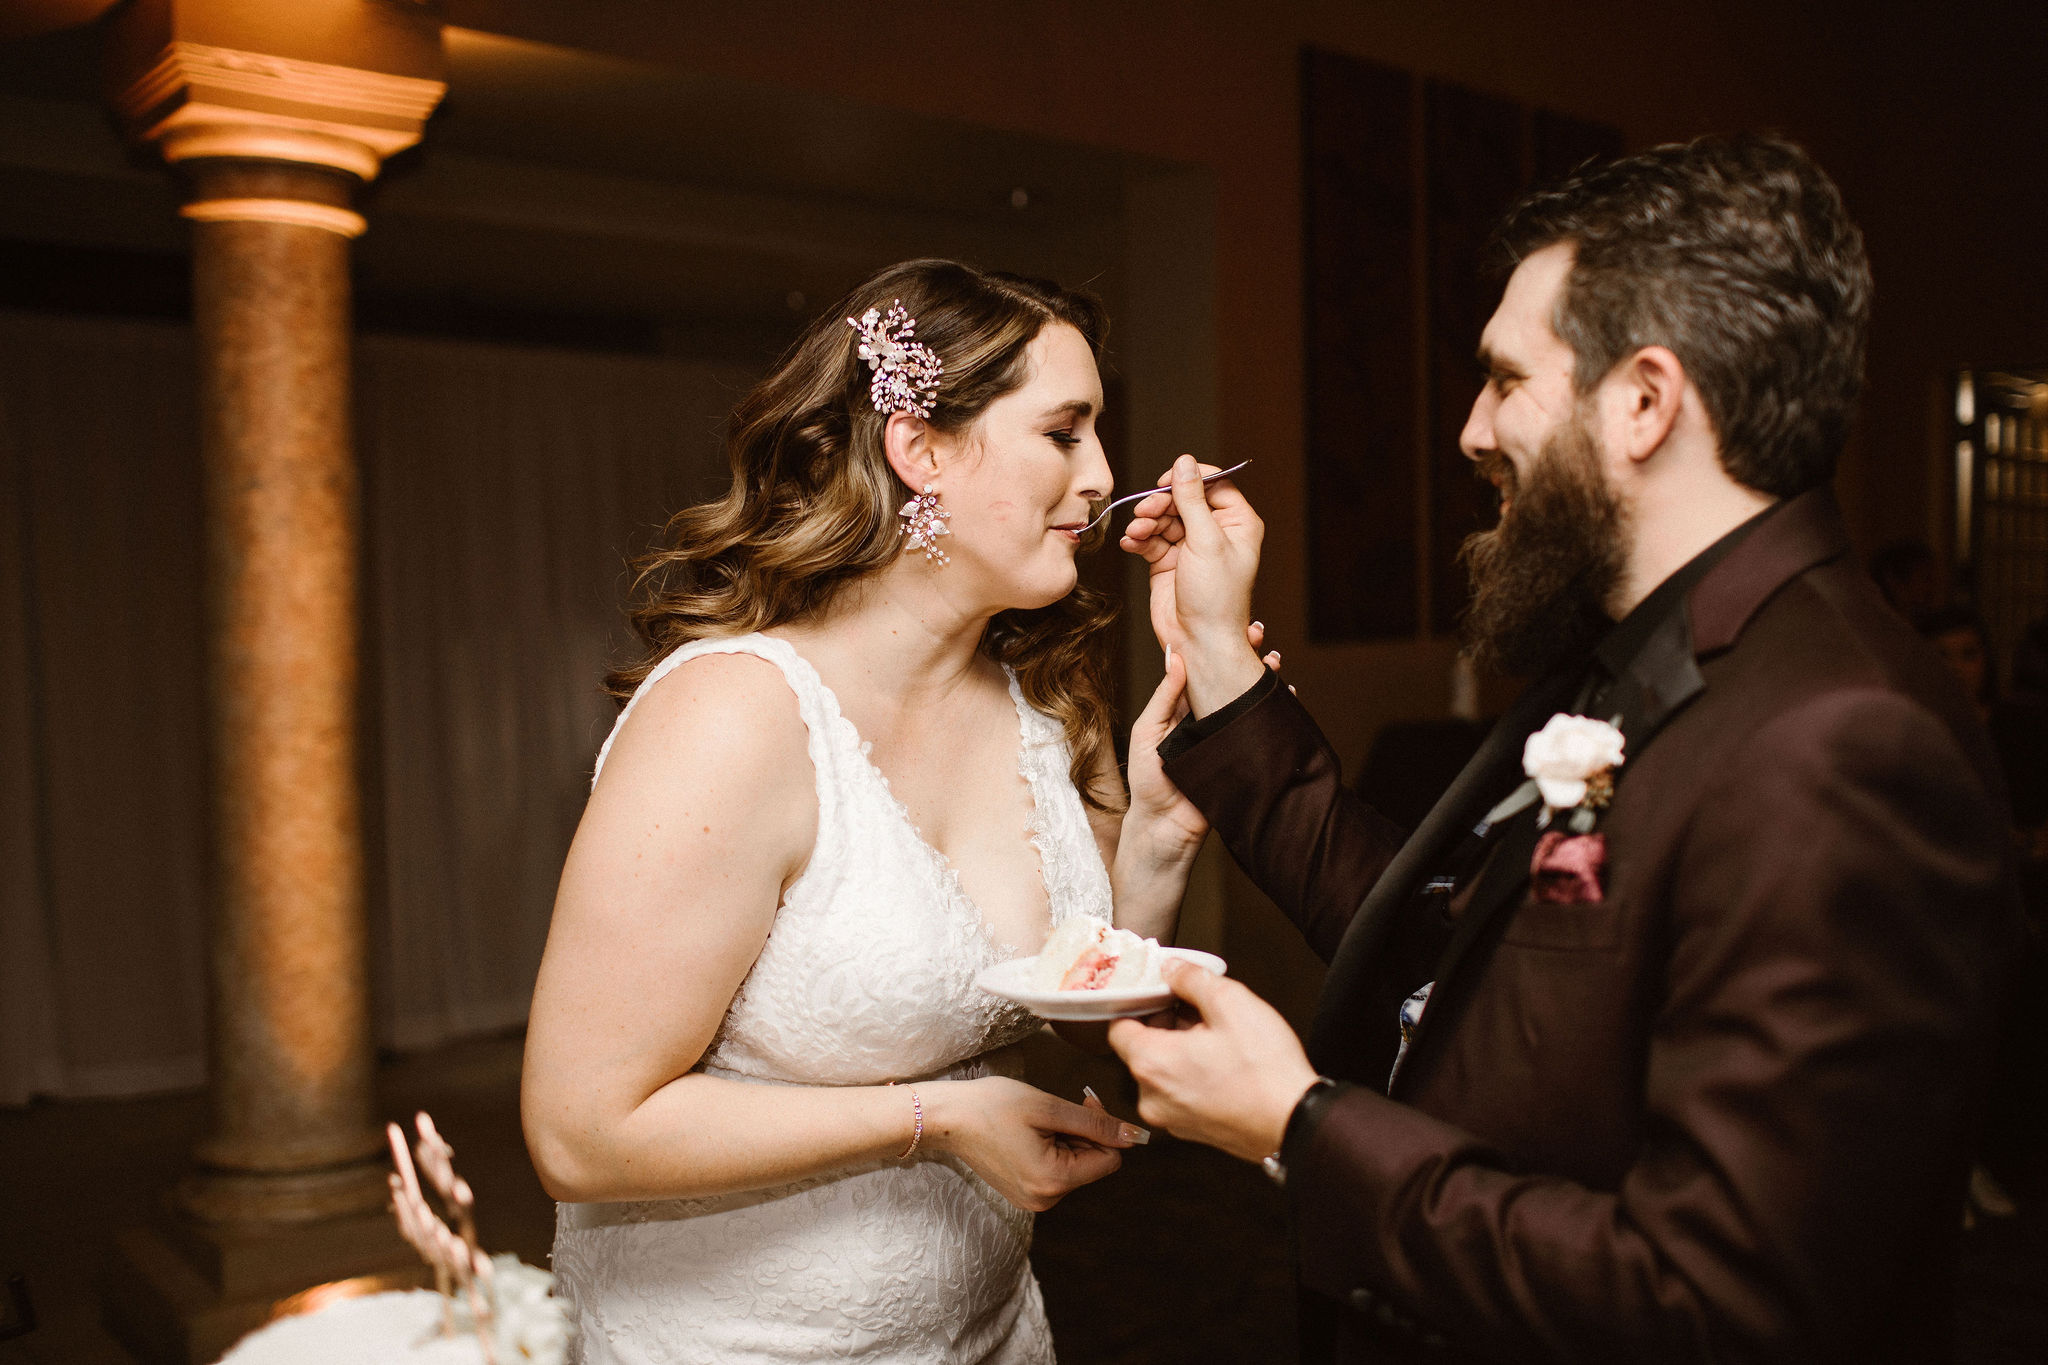 groom feeding cake to bride